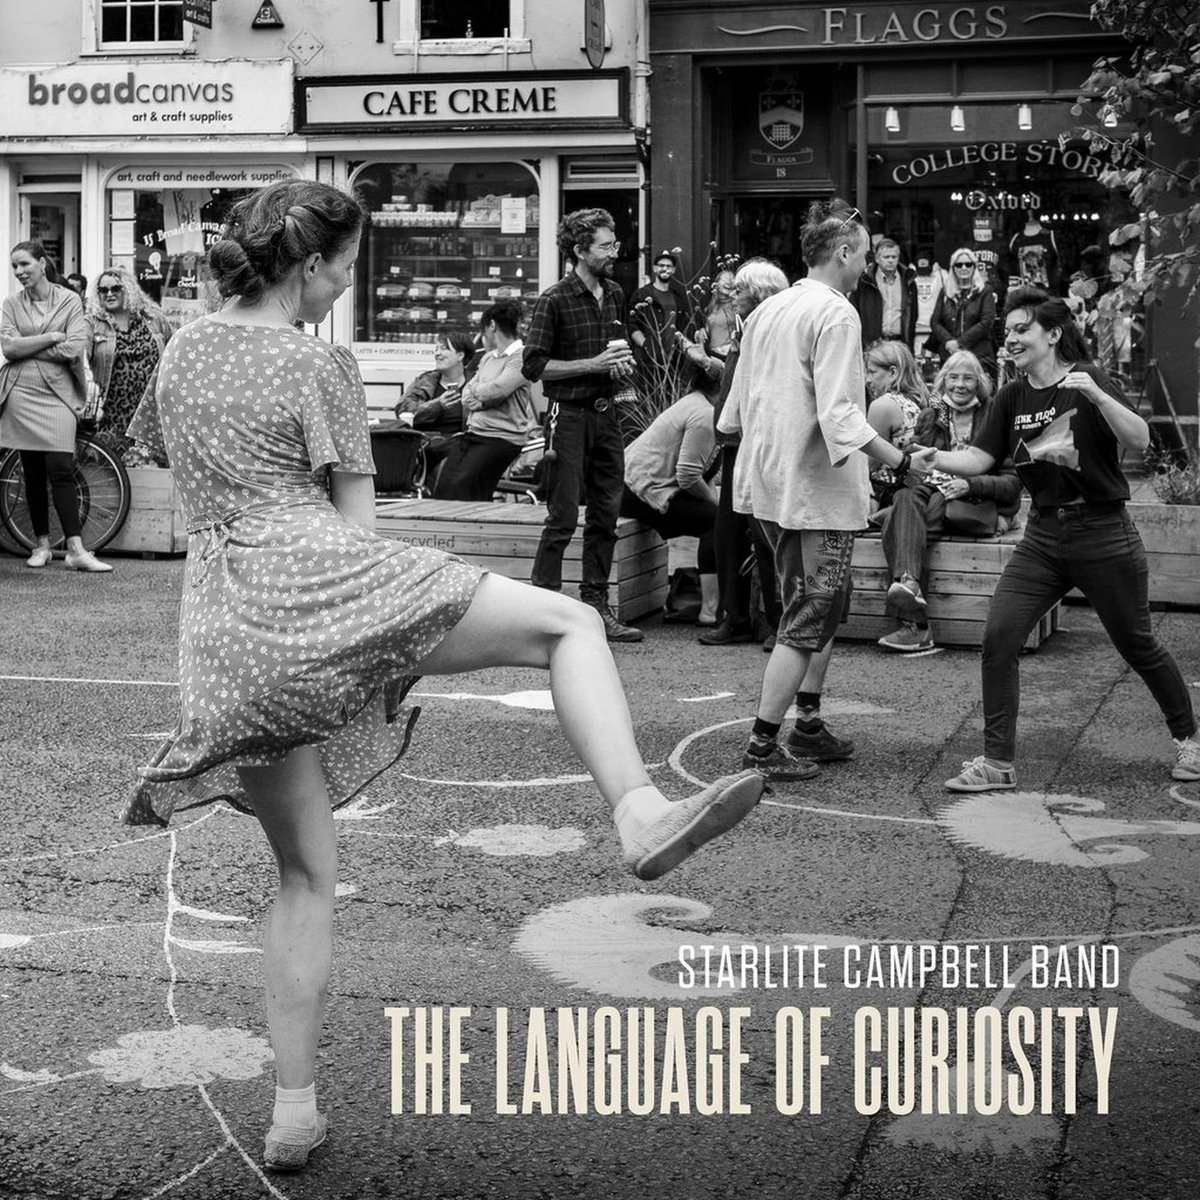 Starlite Campbell Band – The Language of Curiosity